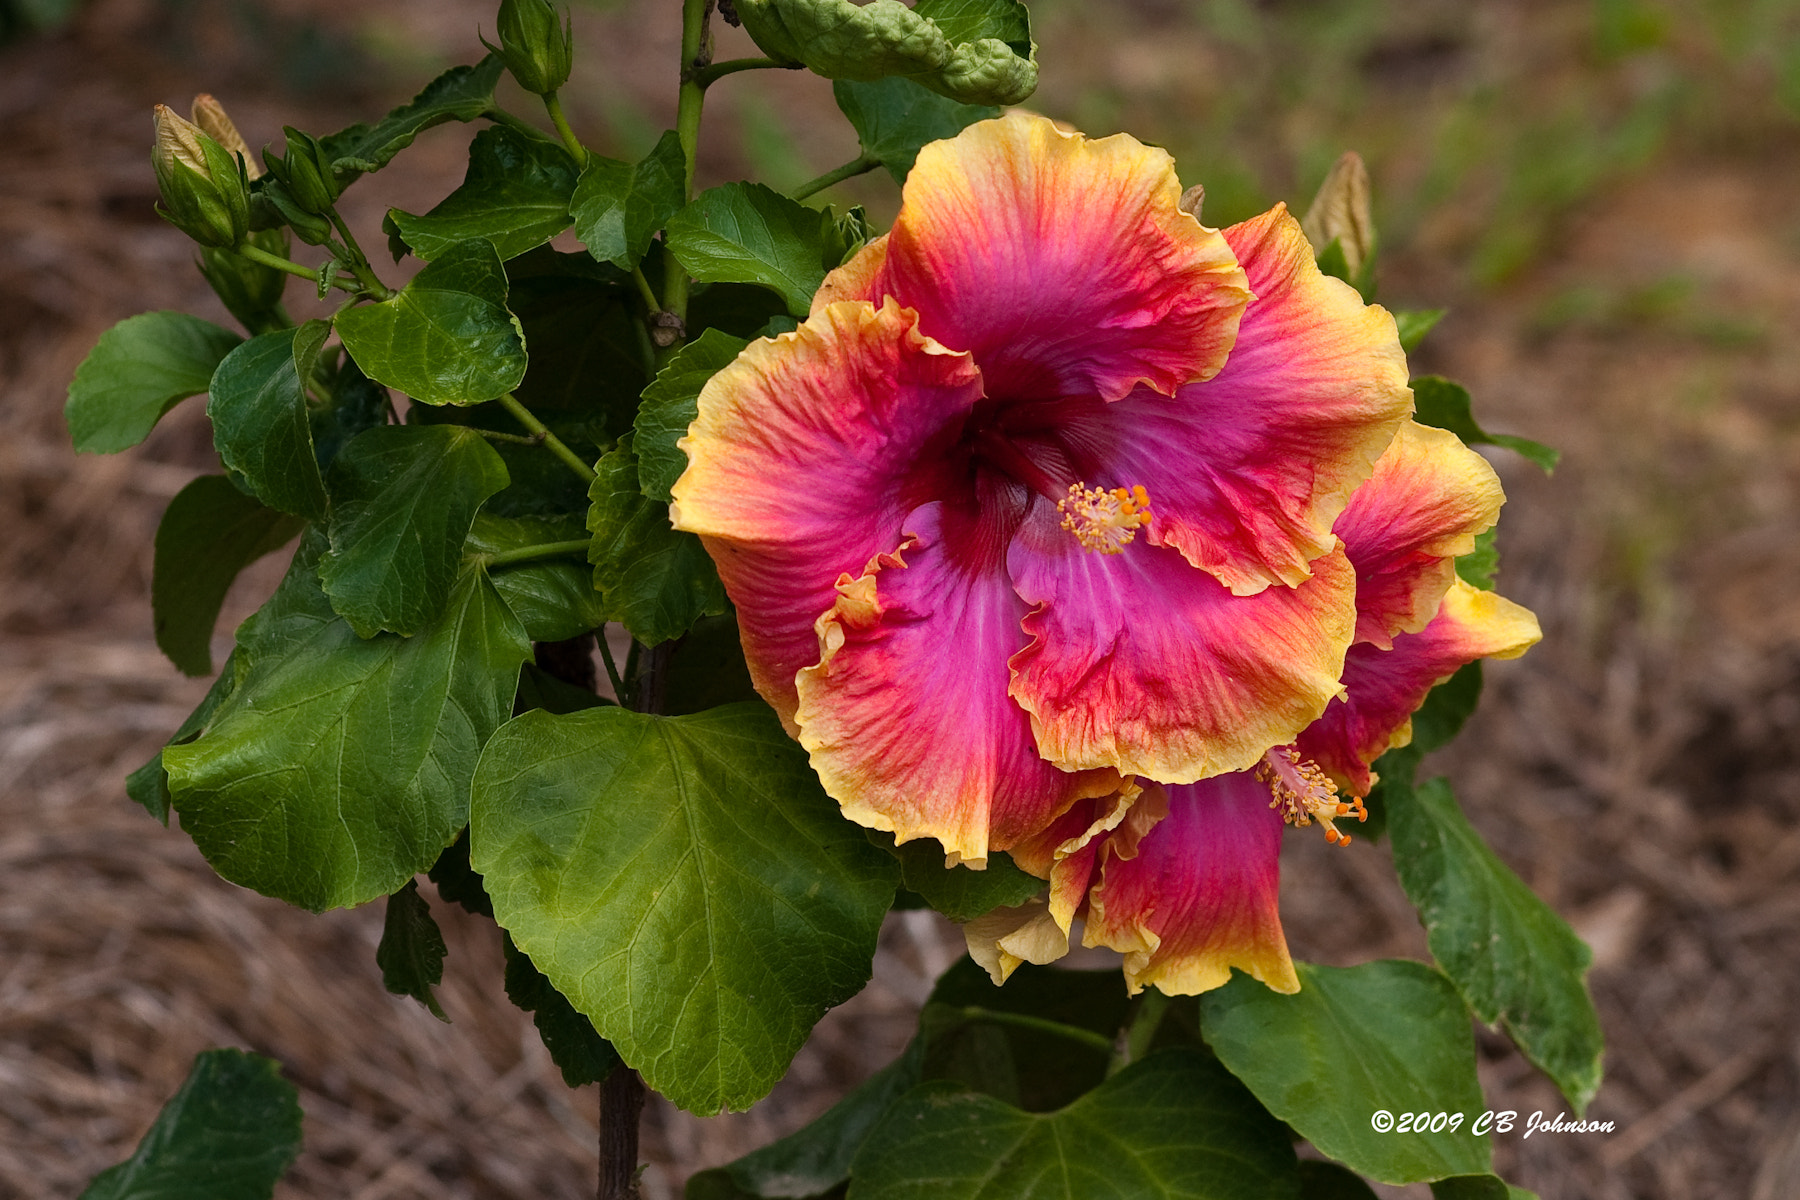 Photograph Hibiscus by Chester Johnson on 500px